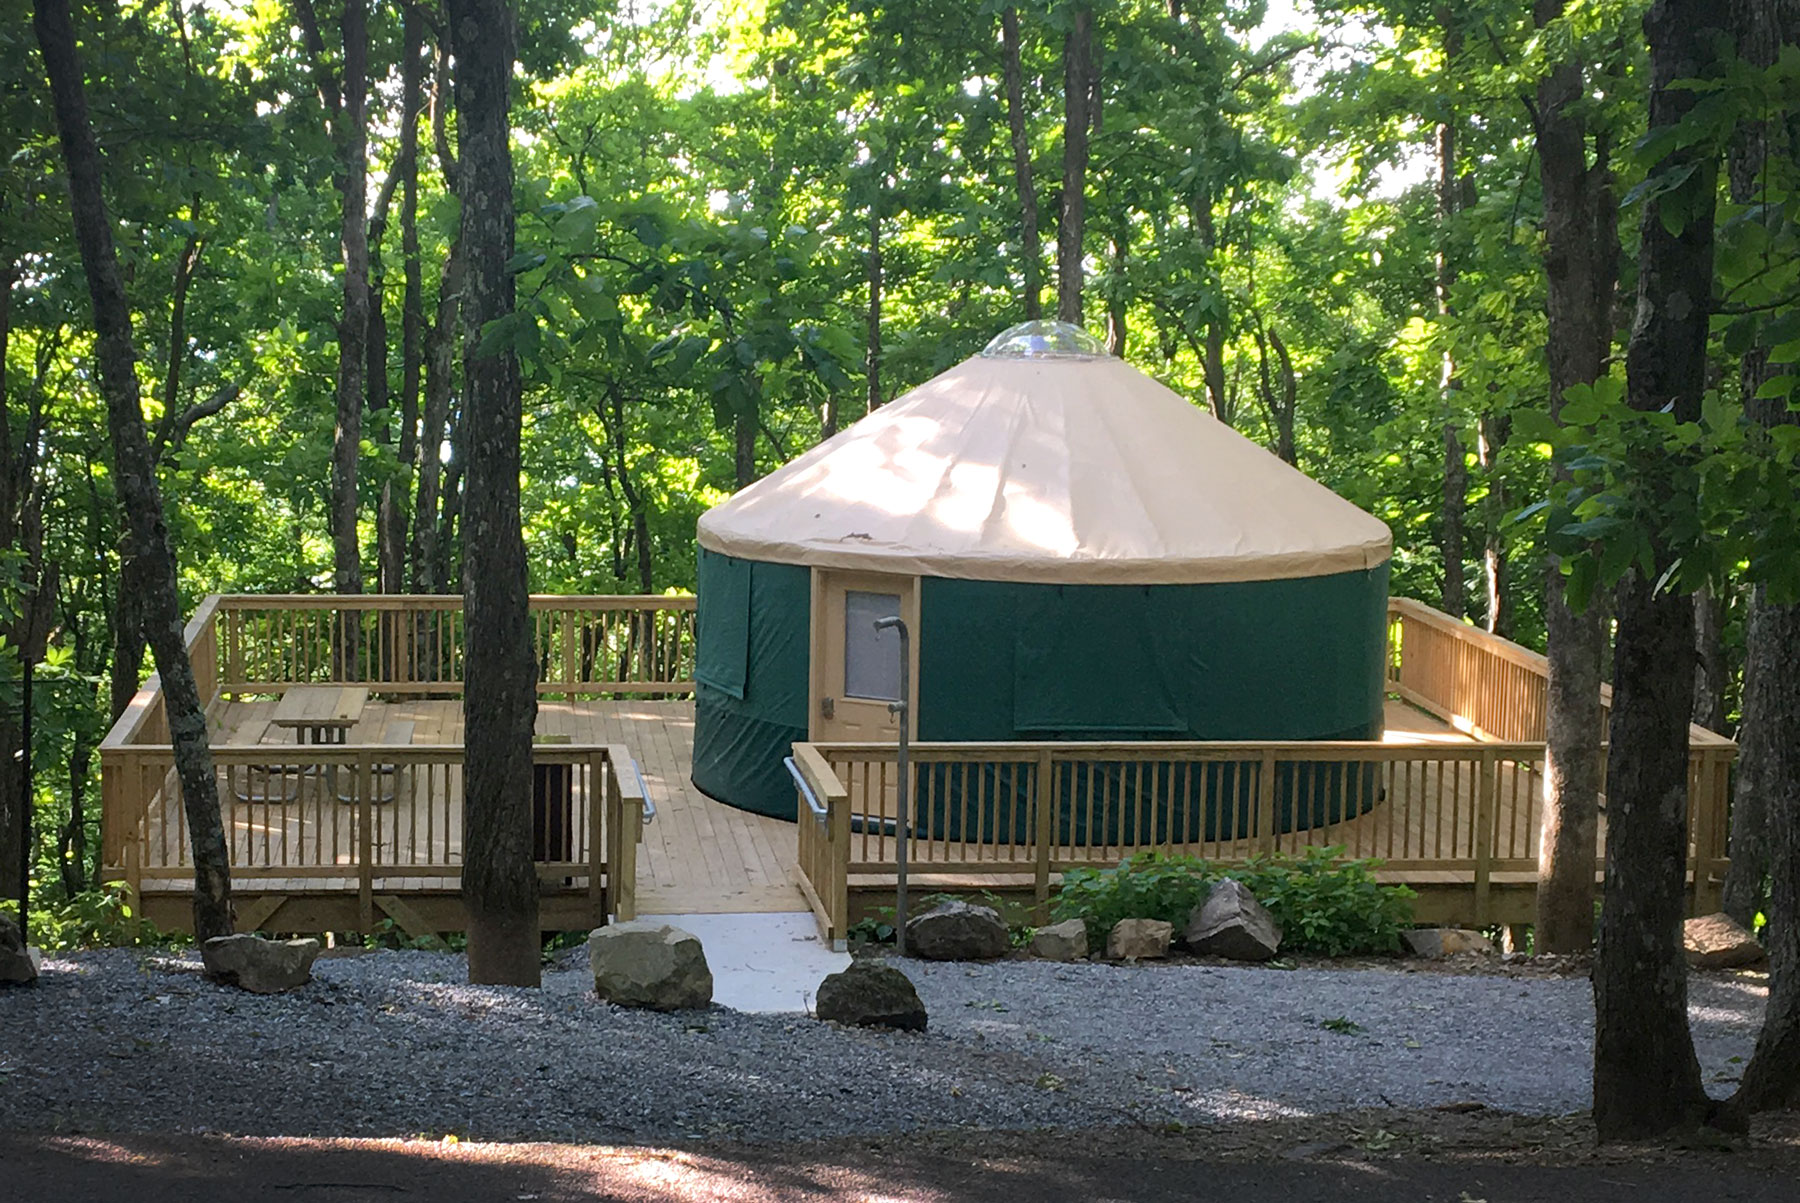 Glamping in green yurt and wooden deck in the Hickory Ridge Campground at Grayson Highlands State Park, Virginia